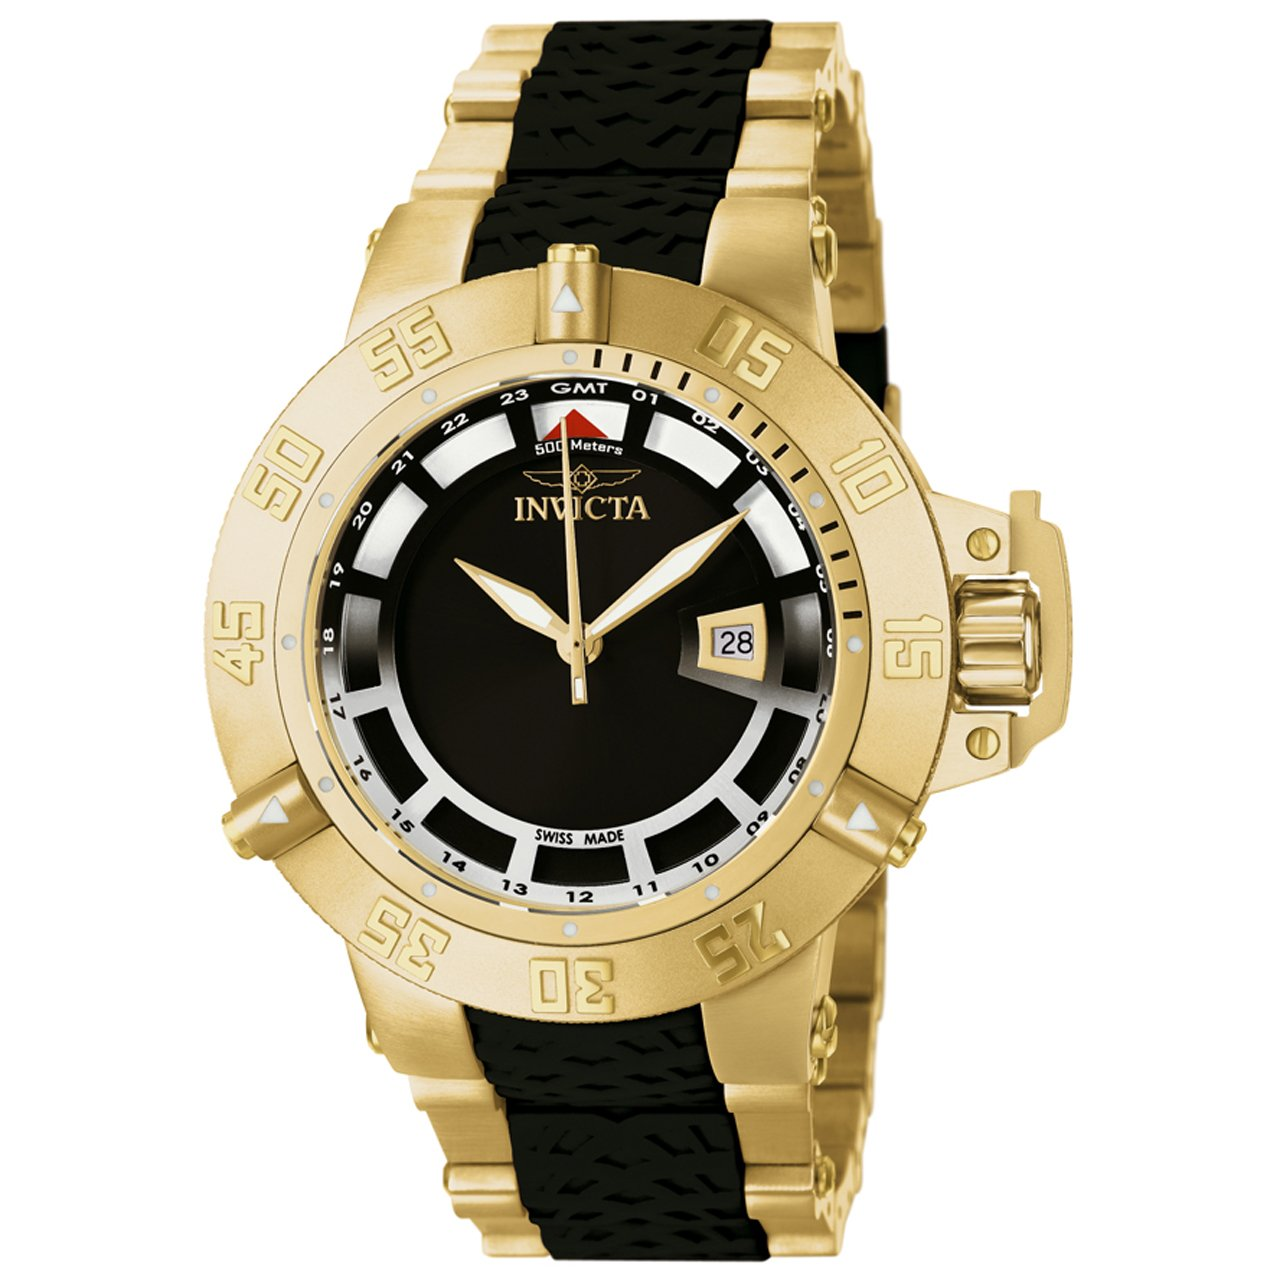 Amazon.com: Invicta Mens 6508BYB Subaqua Noma III GMT 18k Gold-Plated Stainless Steel and Black Polyurethane Watch: Watches